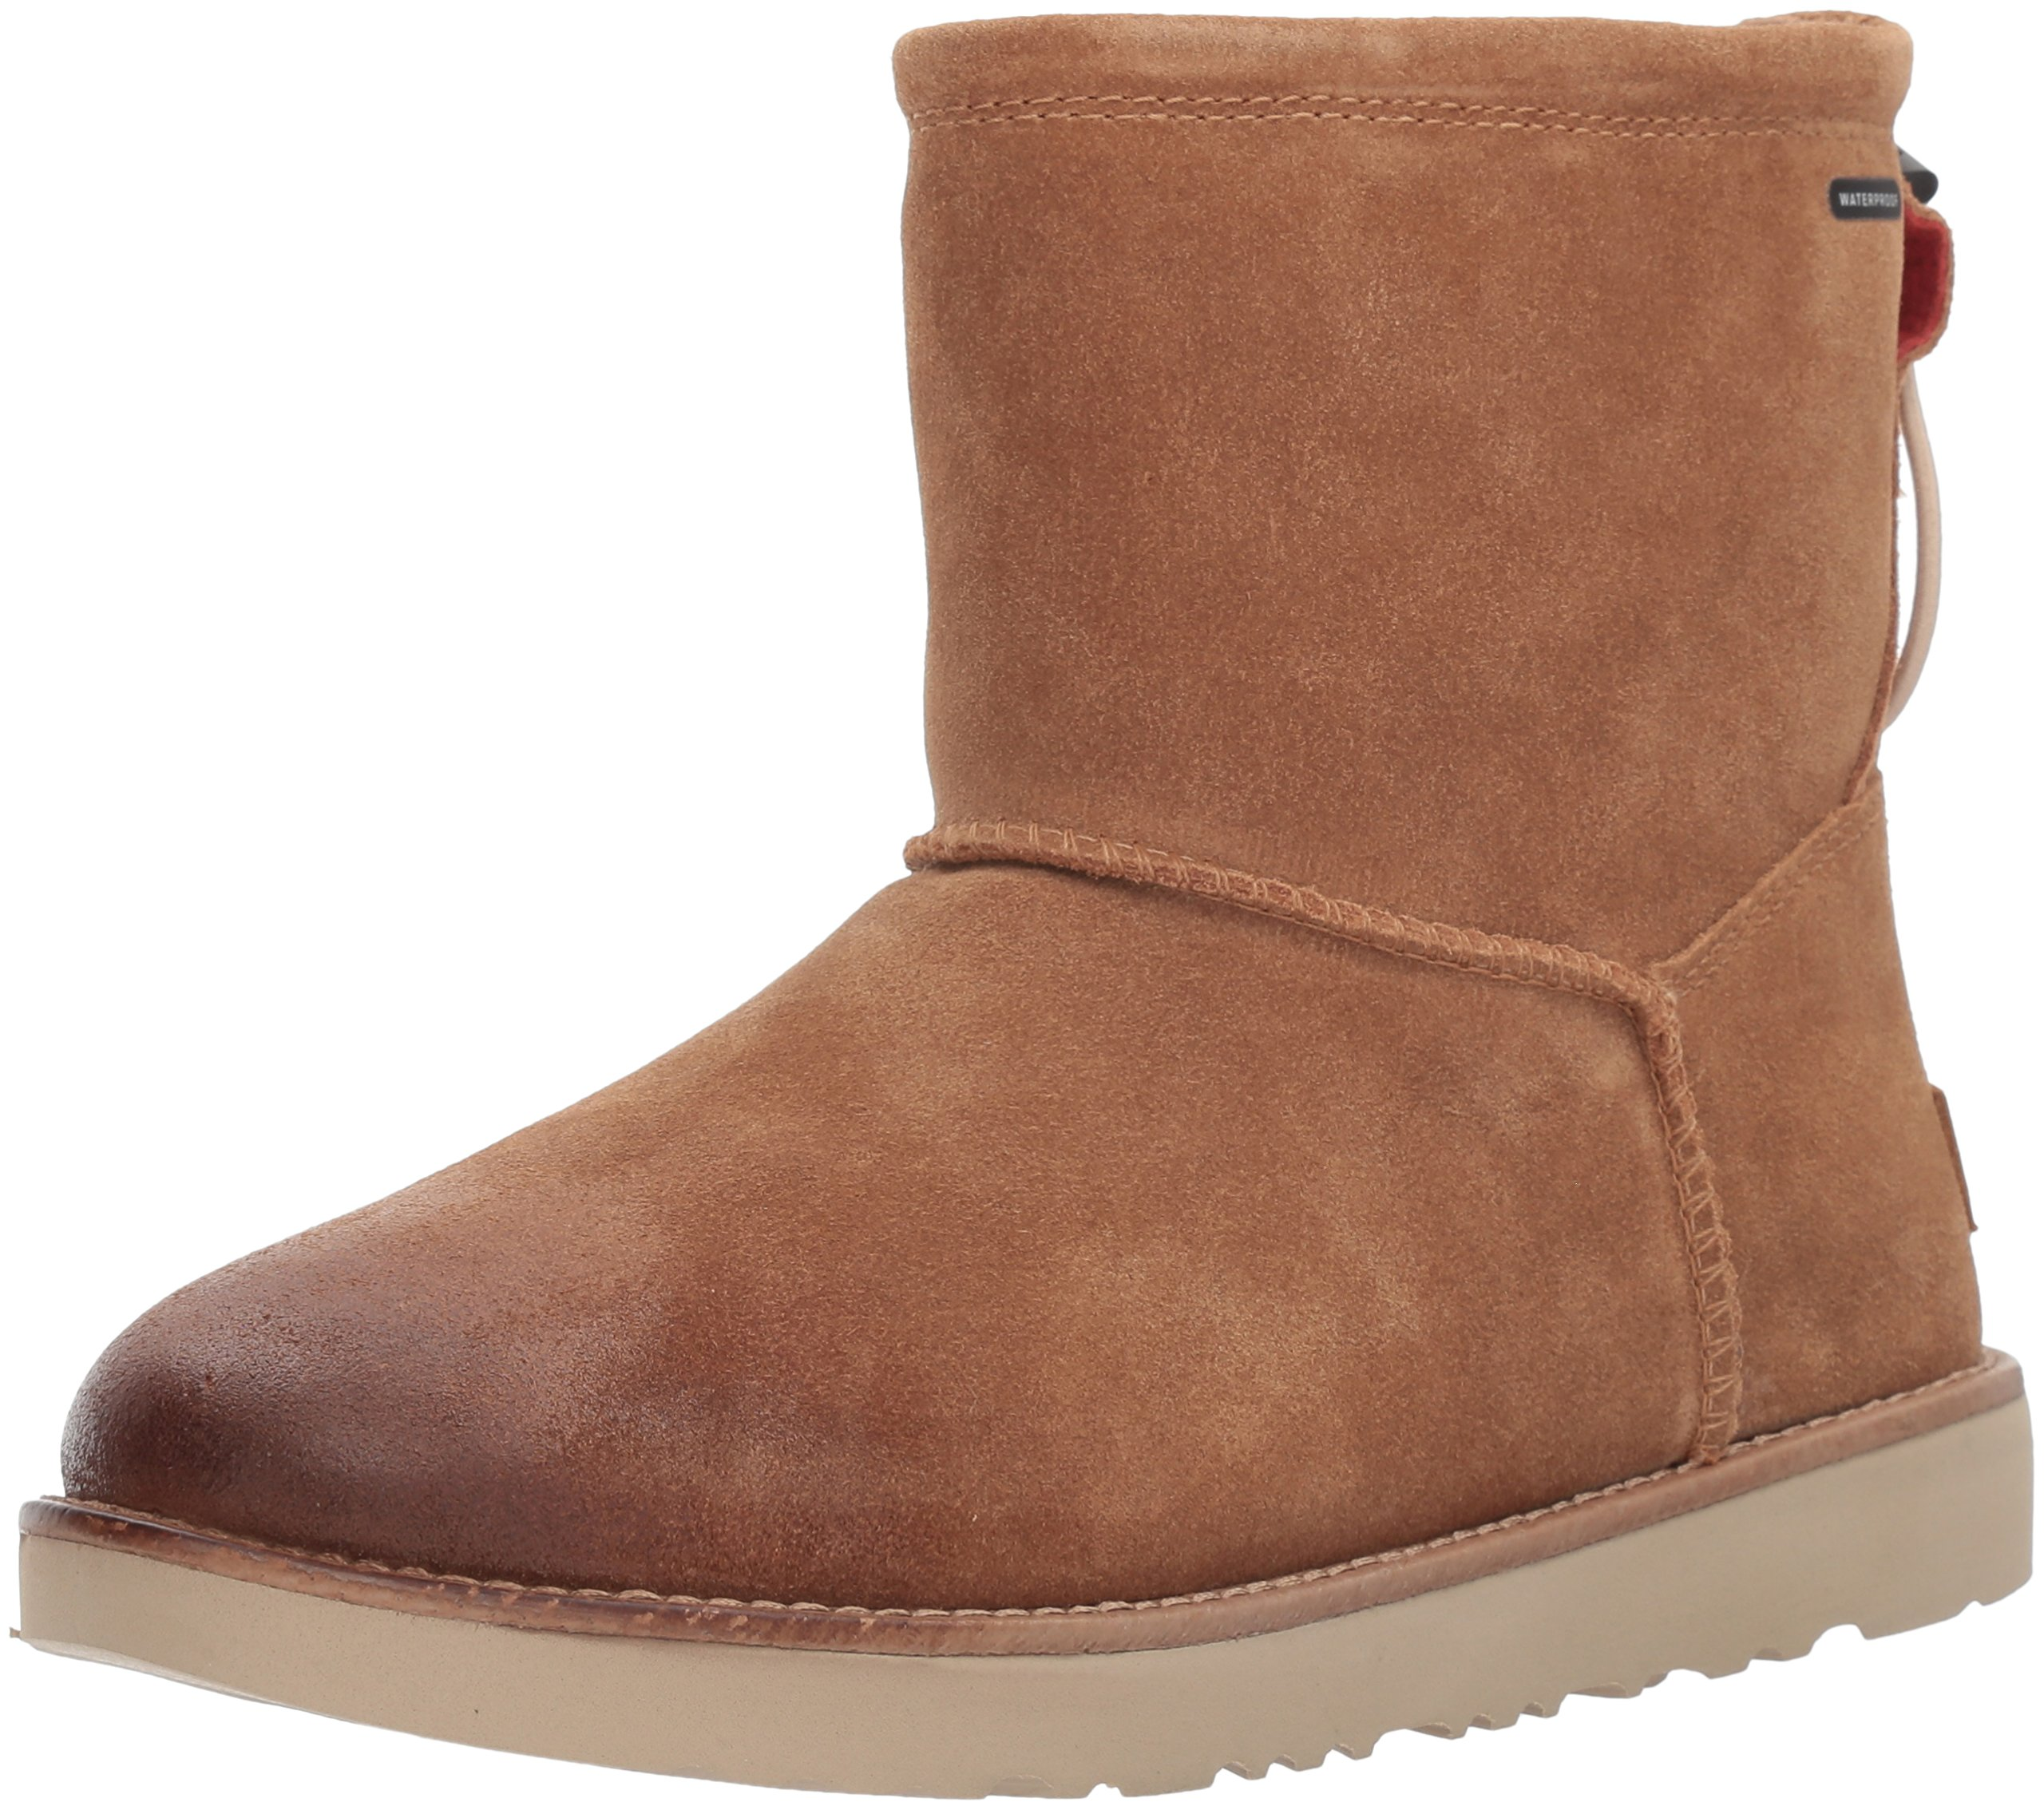 ugg men's classic toggle waterproof winter boot